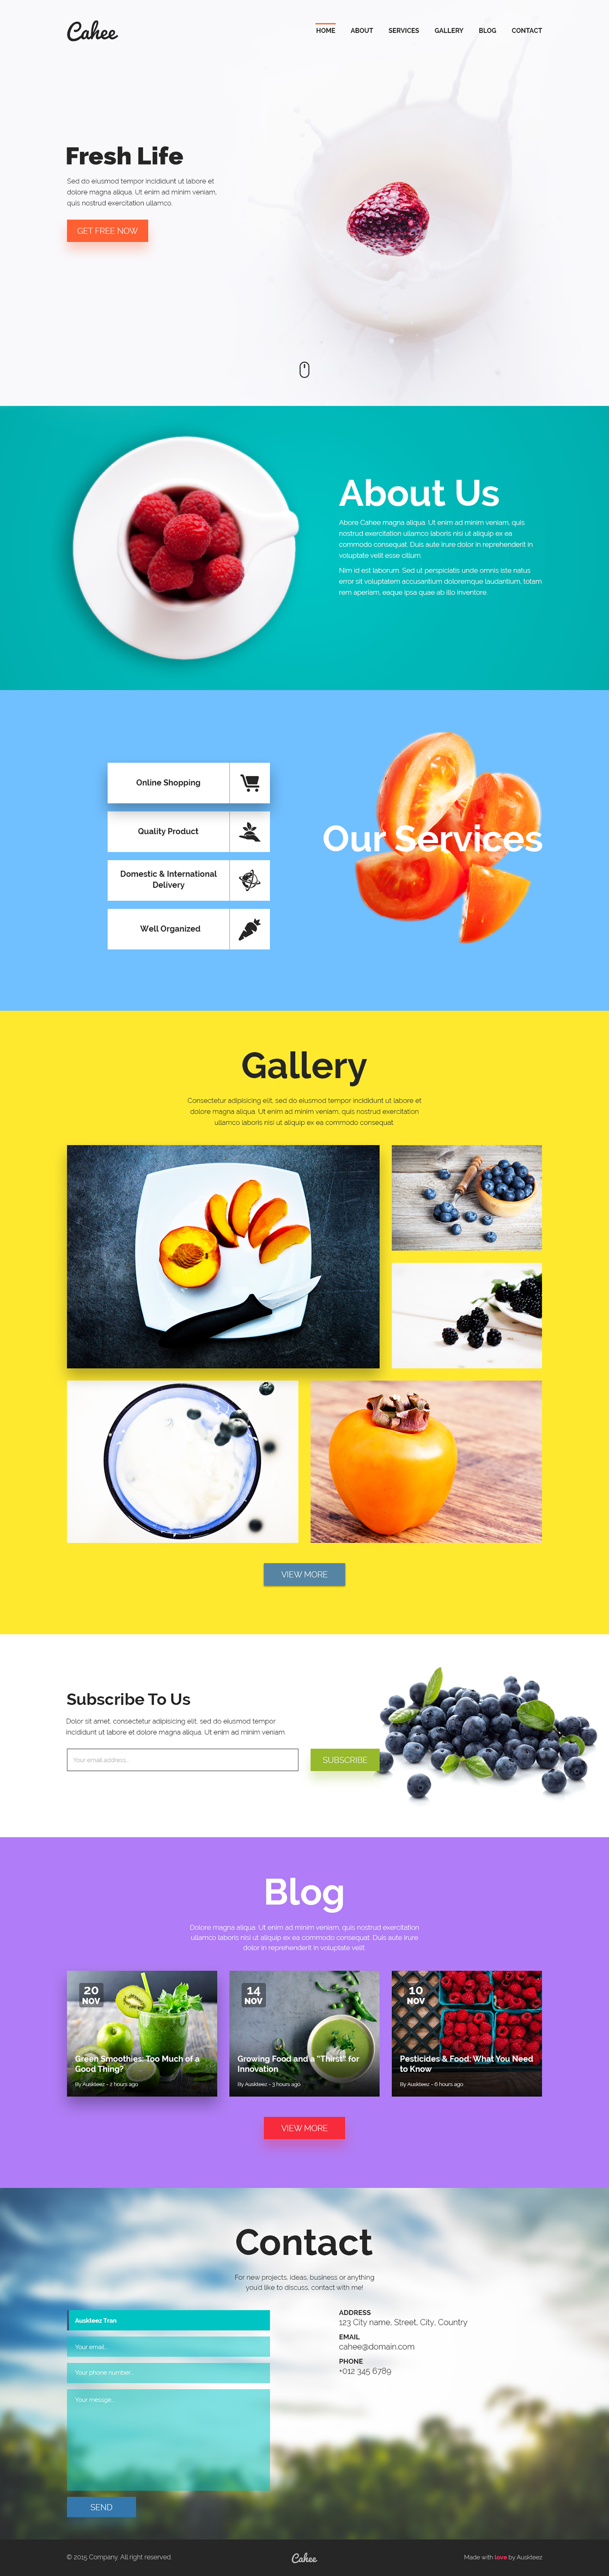 free landing page One Page template psd Fruit fresh